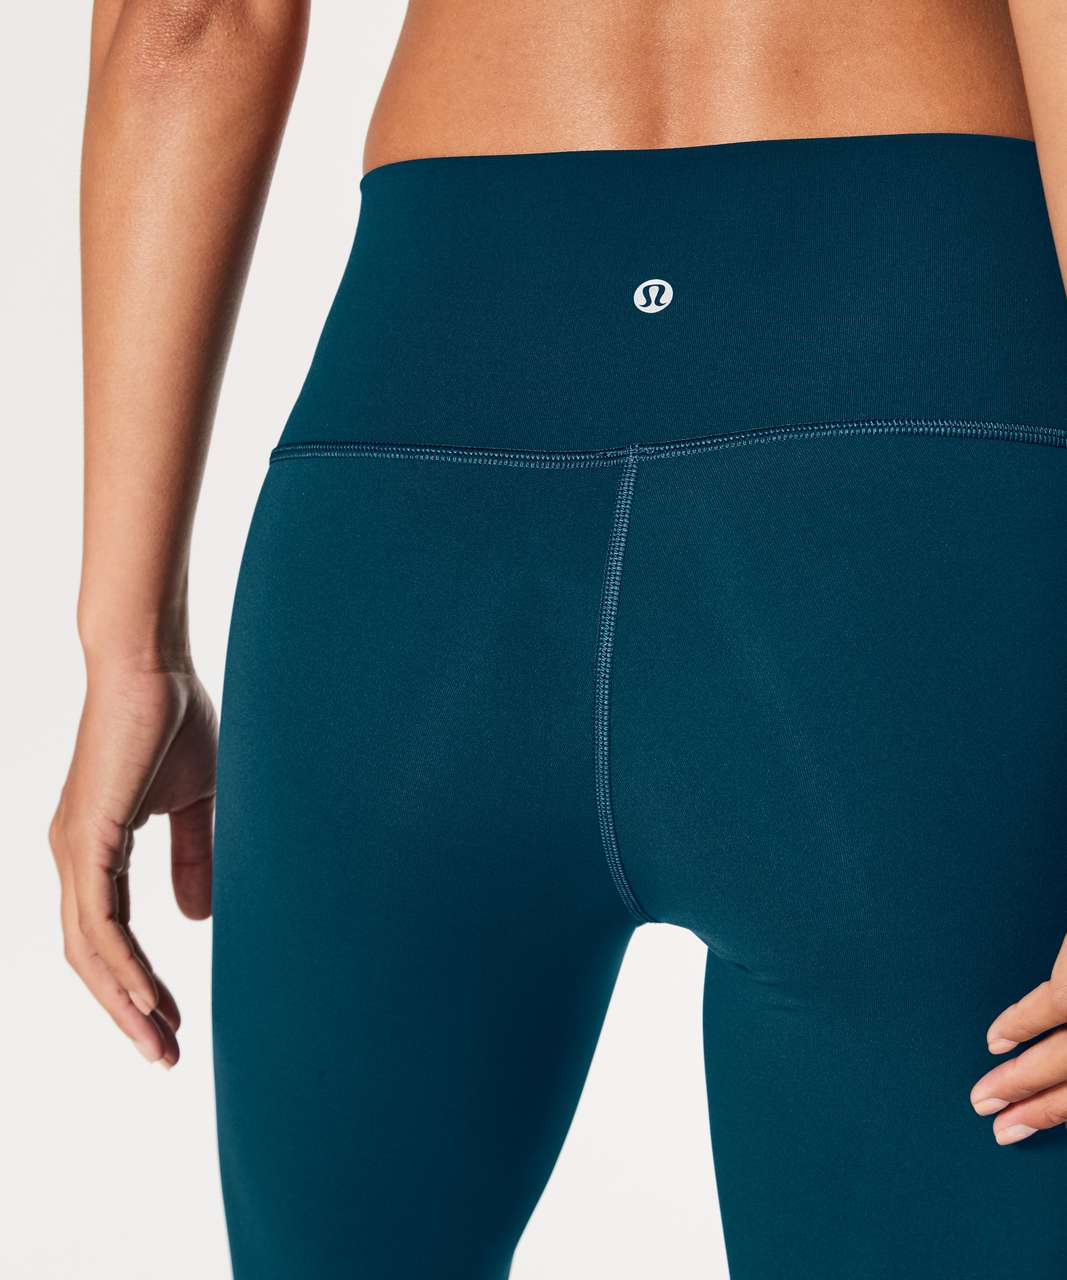 "Lululemon Wunder Under Hi-Rise 7/8 Tight 25"" - Nile Blue"